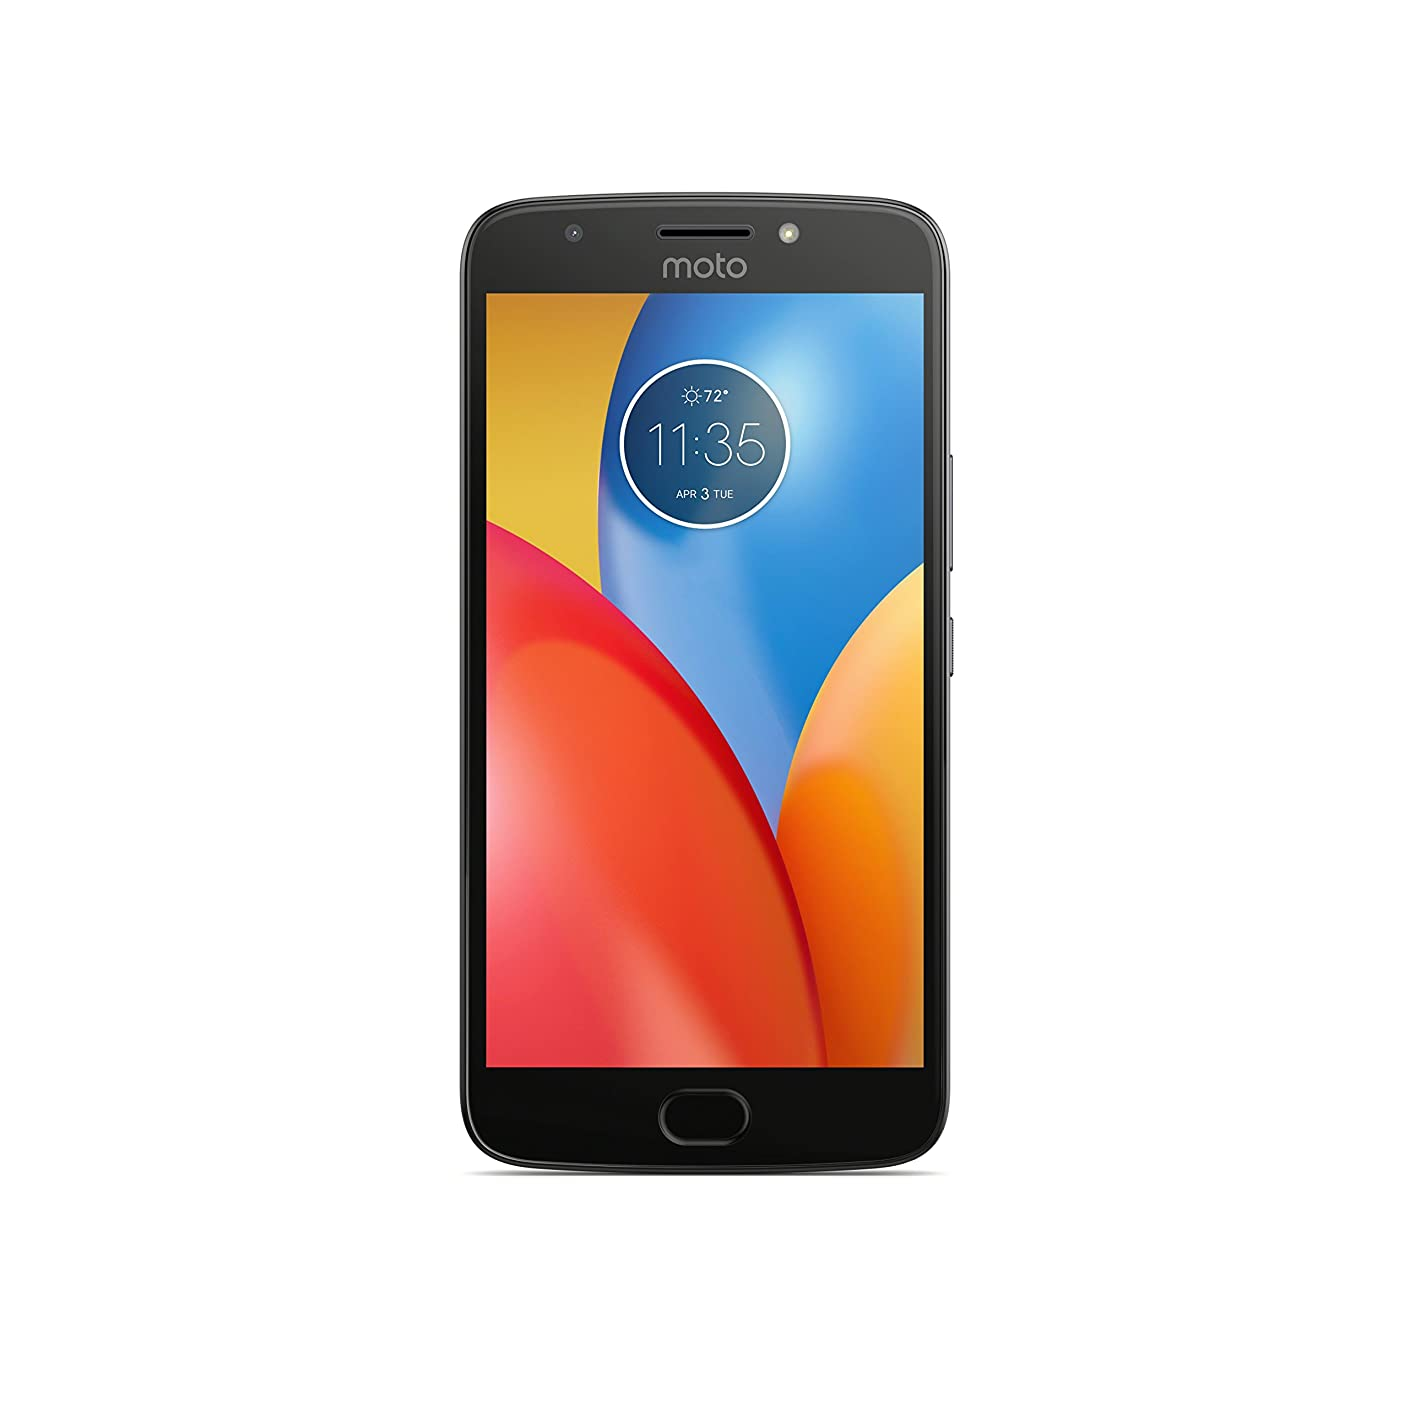 Moto E Plus (4th Generation) - 16 GB - Unlocked (AT&T/Sprint/T-Mobile/Verizon) - Iron Gray